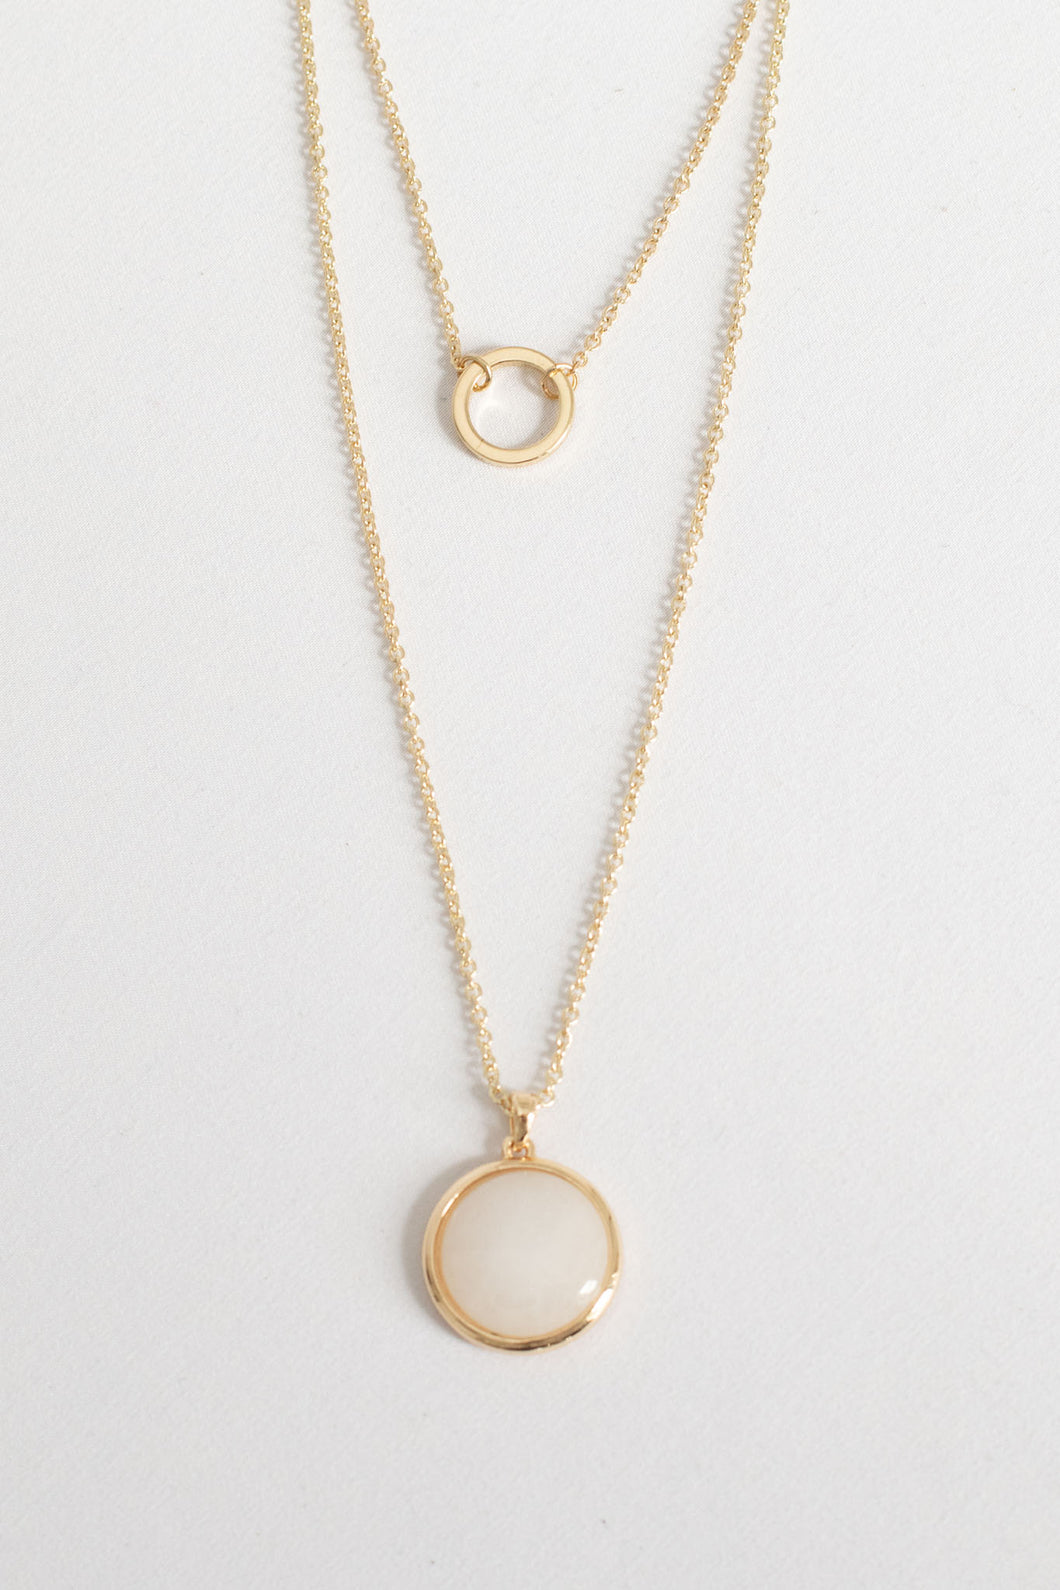 Posy Double Chain Disc and Hoop Necklace - Gold